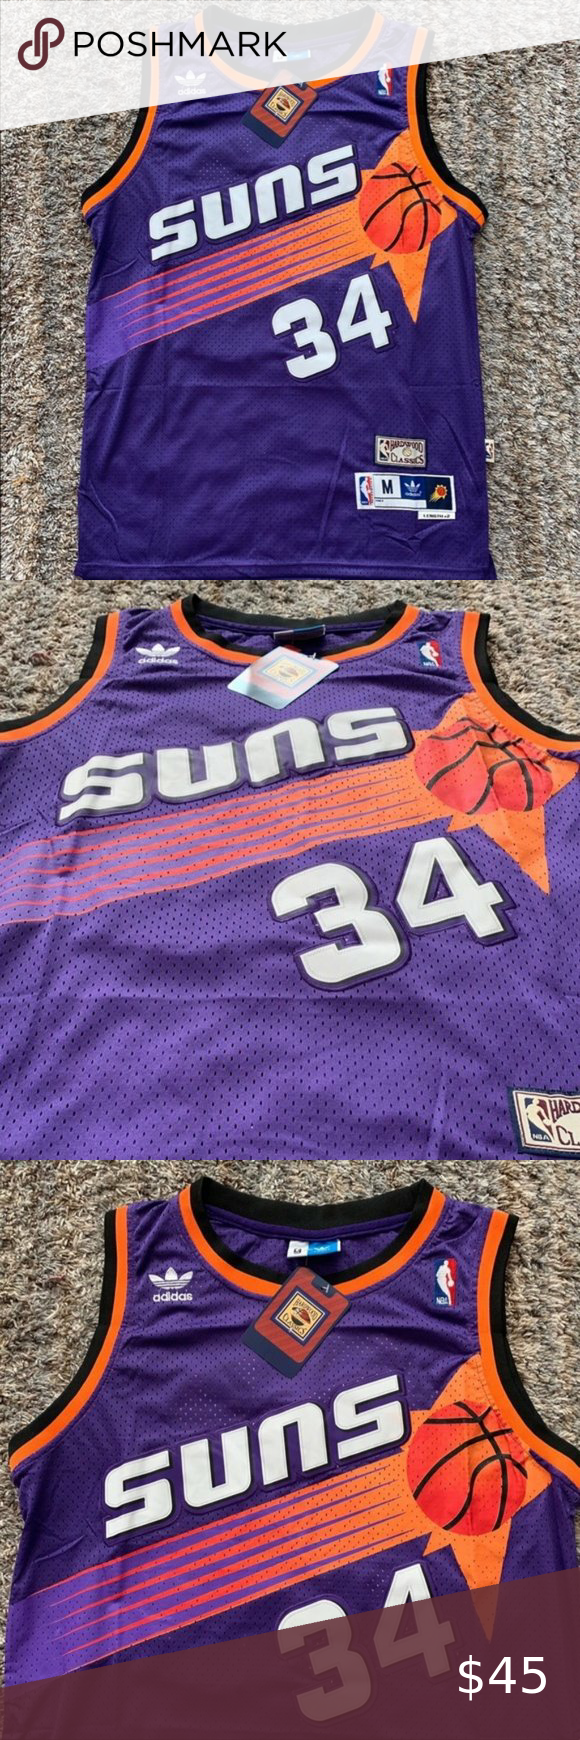 Charles Barkley Phoenix Suns Retro Purple Jersey 1 Brand New With Tags 2 All Items Fit True To Official Size 3 Charles Barkley Shaquille O Neal Phoenix Suns